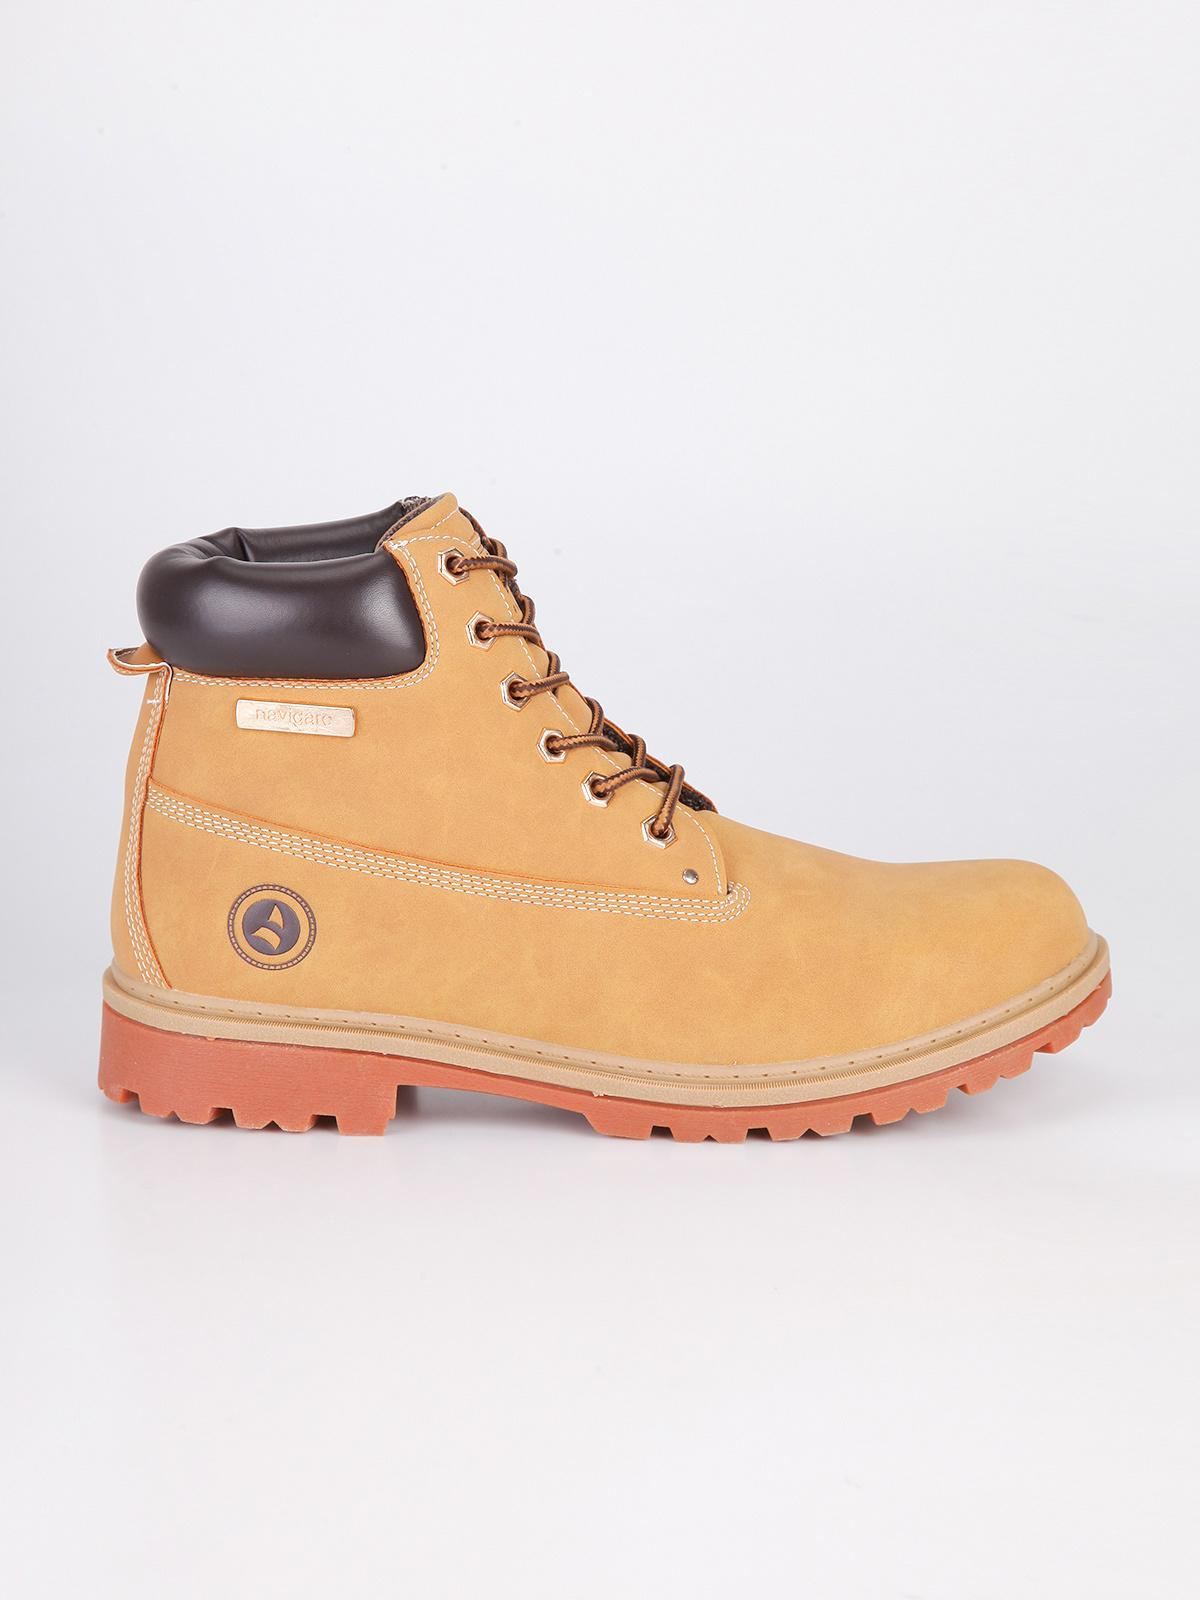 reputable site 0eb8c a390c navigare Eco-leather boots - camel | MecShopping